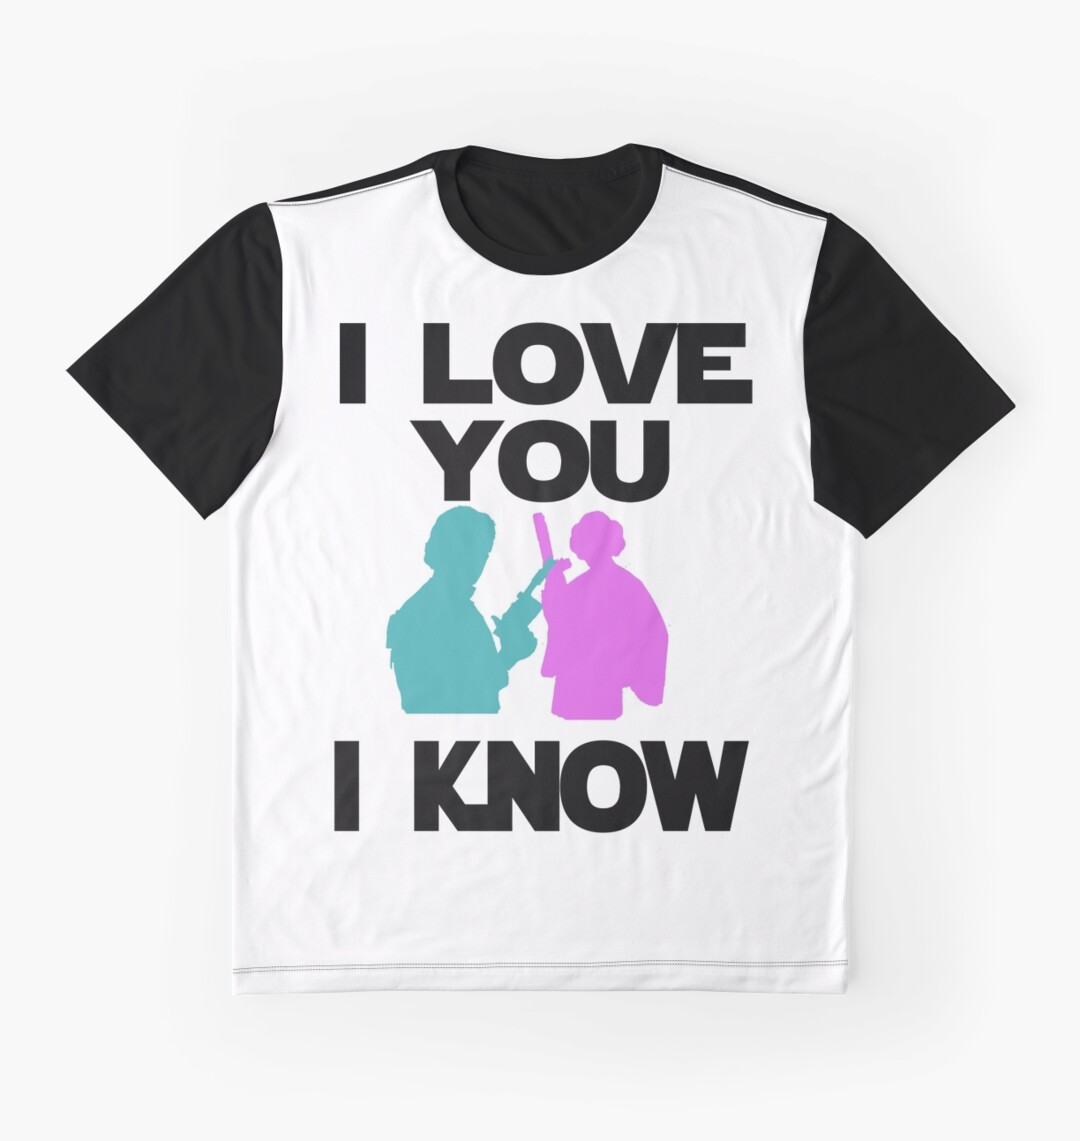 Design t shirt love - Star Wars Han Solo And Princess Leia I Love You I Know Design Graphic T Shirts